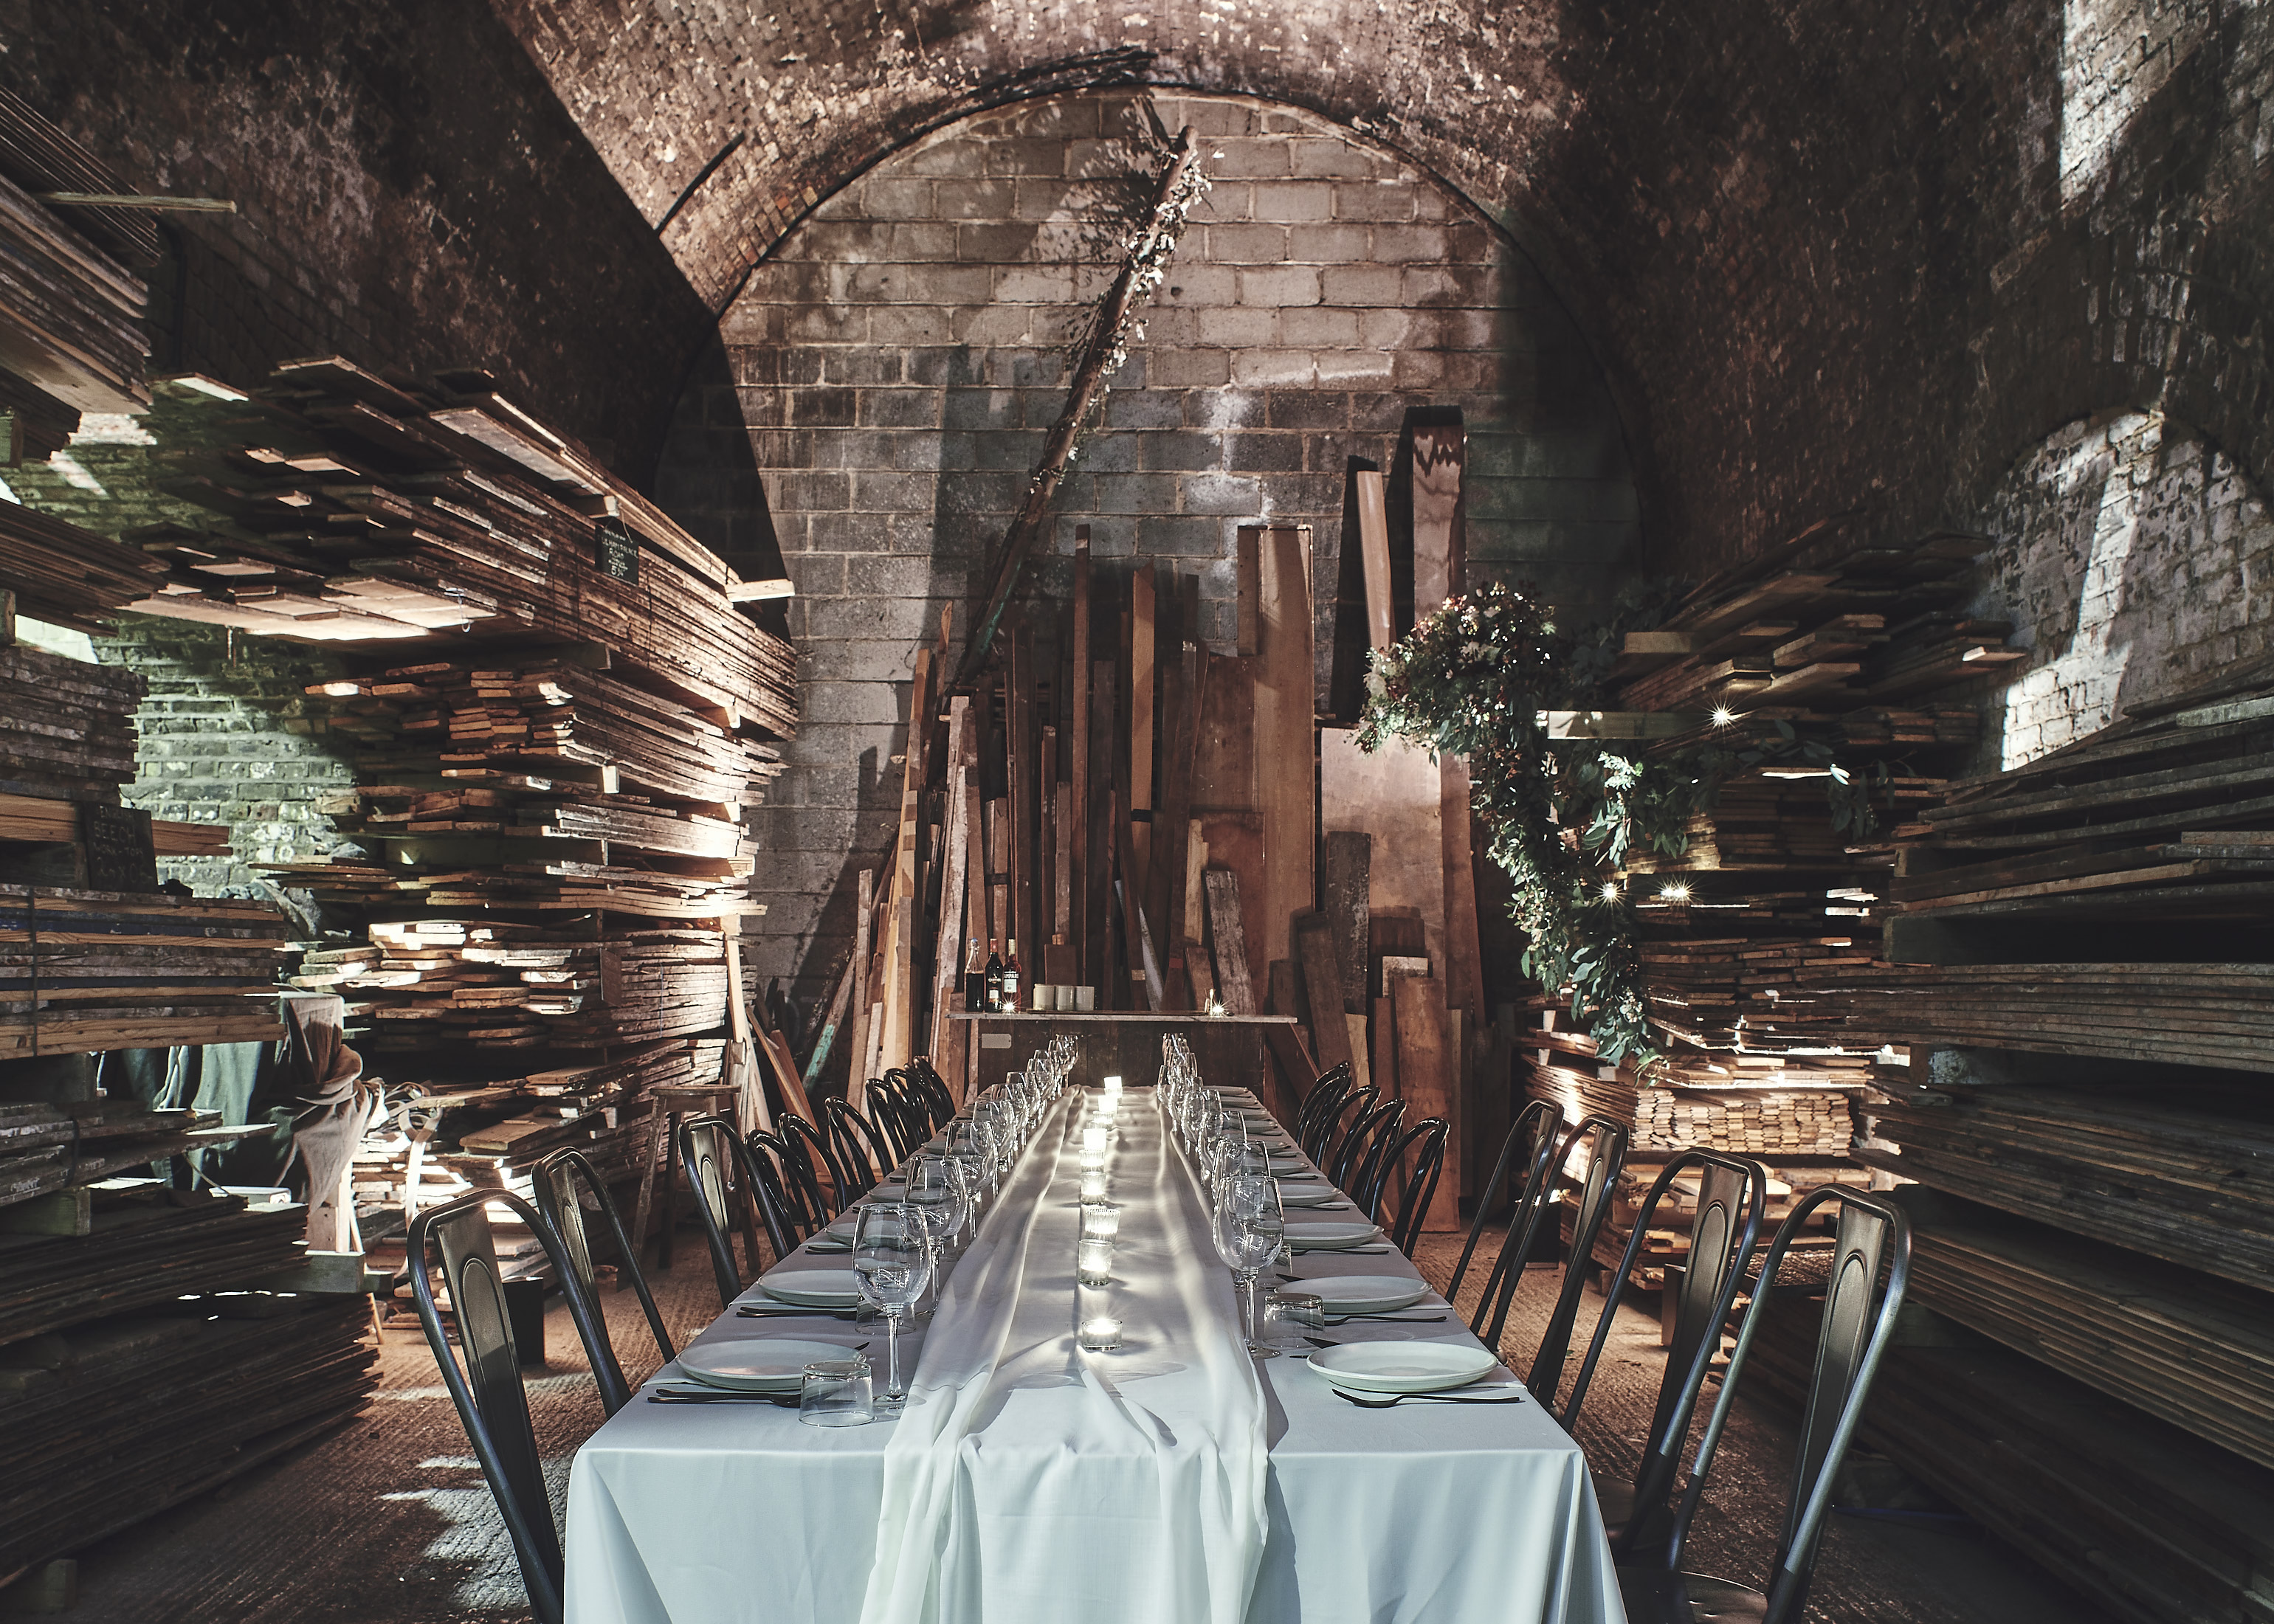 The Maltby Arch where guests will be seated for the supper club. (Credit LASSCO Ropewalk & Styling: Lucy Franks)